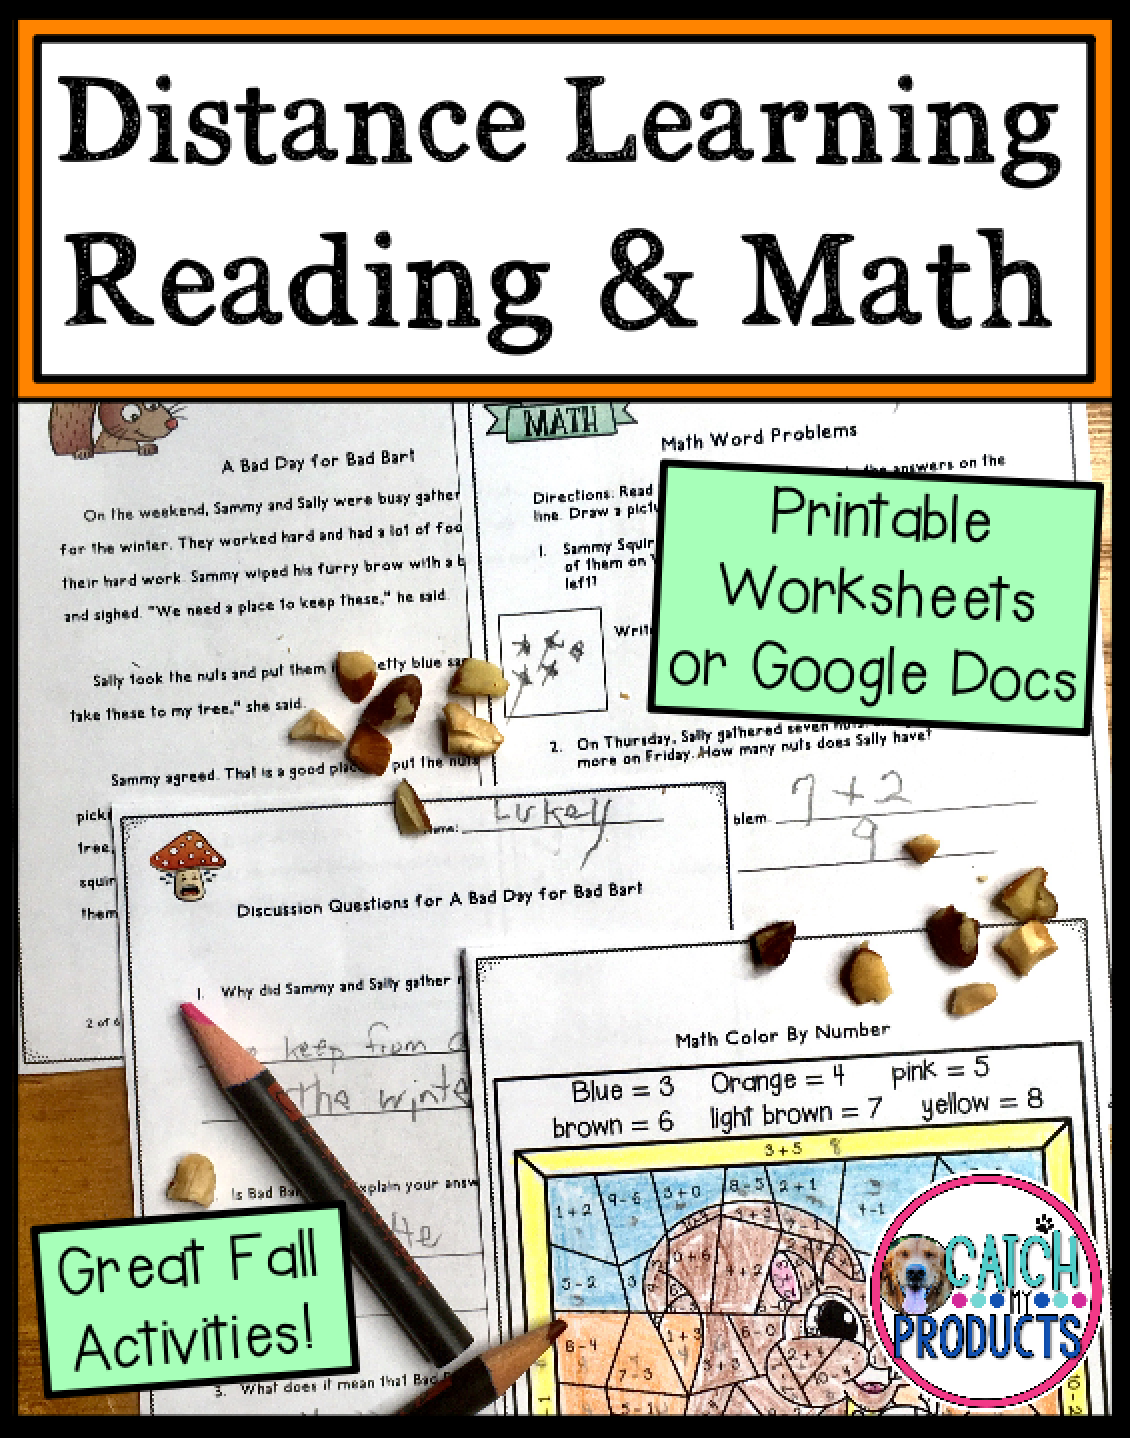 Distance Learning Reading Comprehension And Math